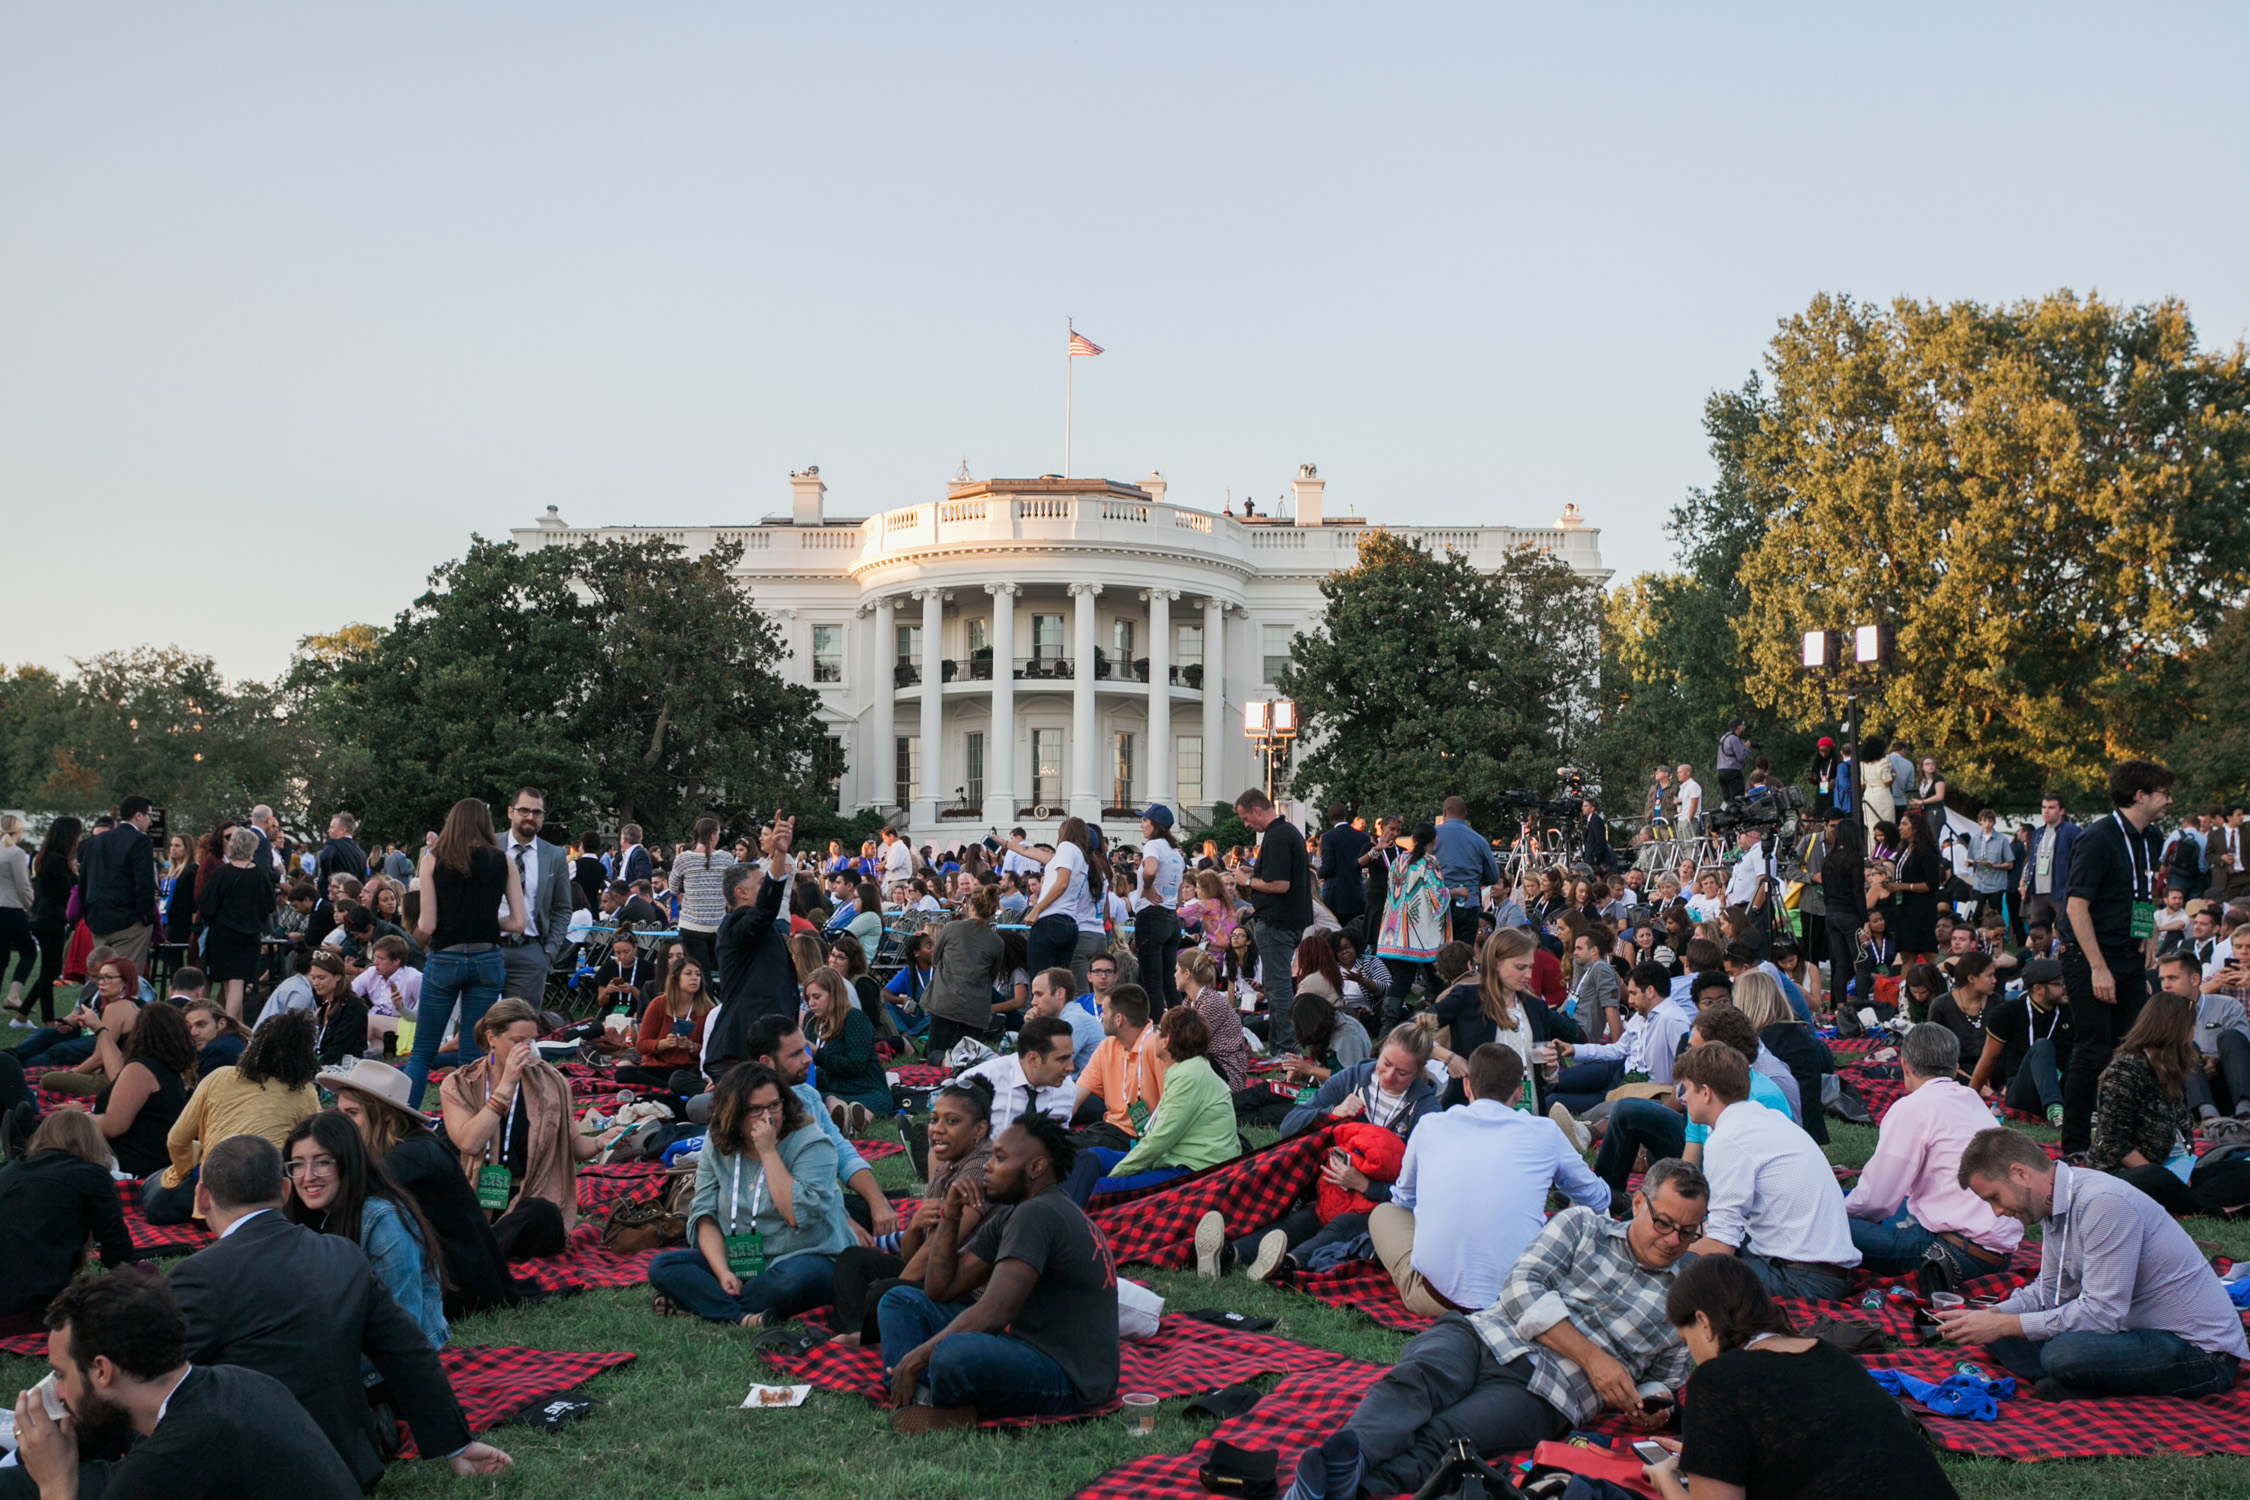 image of SXSW festival during Obama Administration on South Lawn of the White House